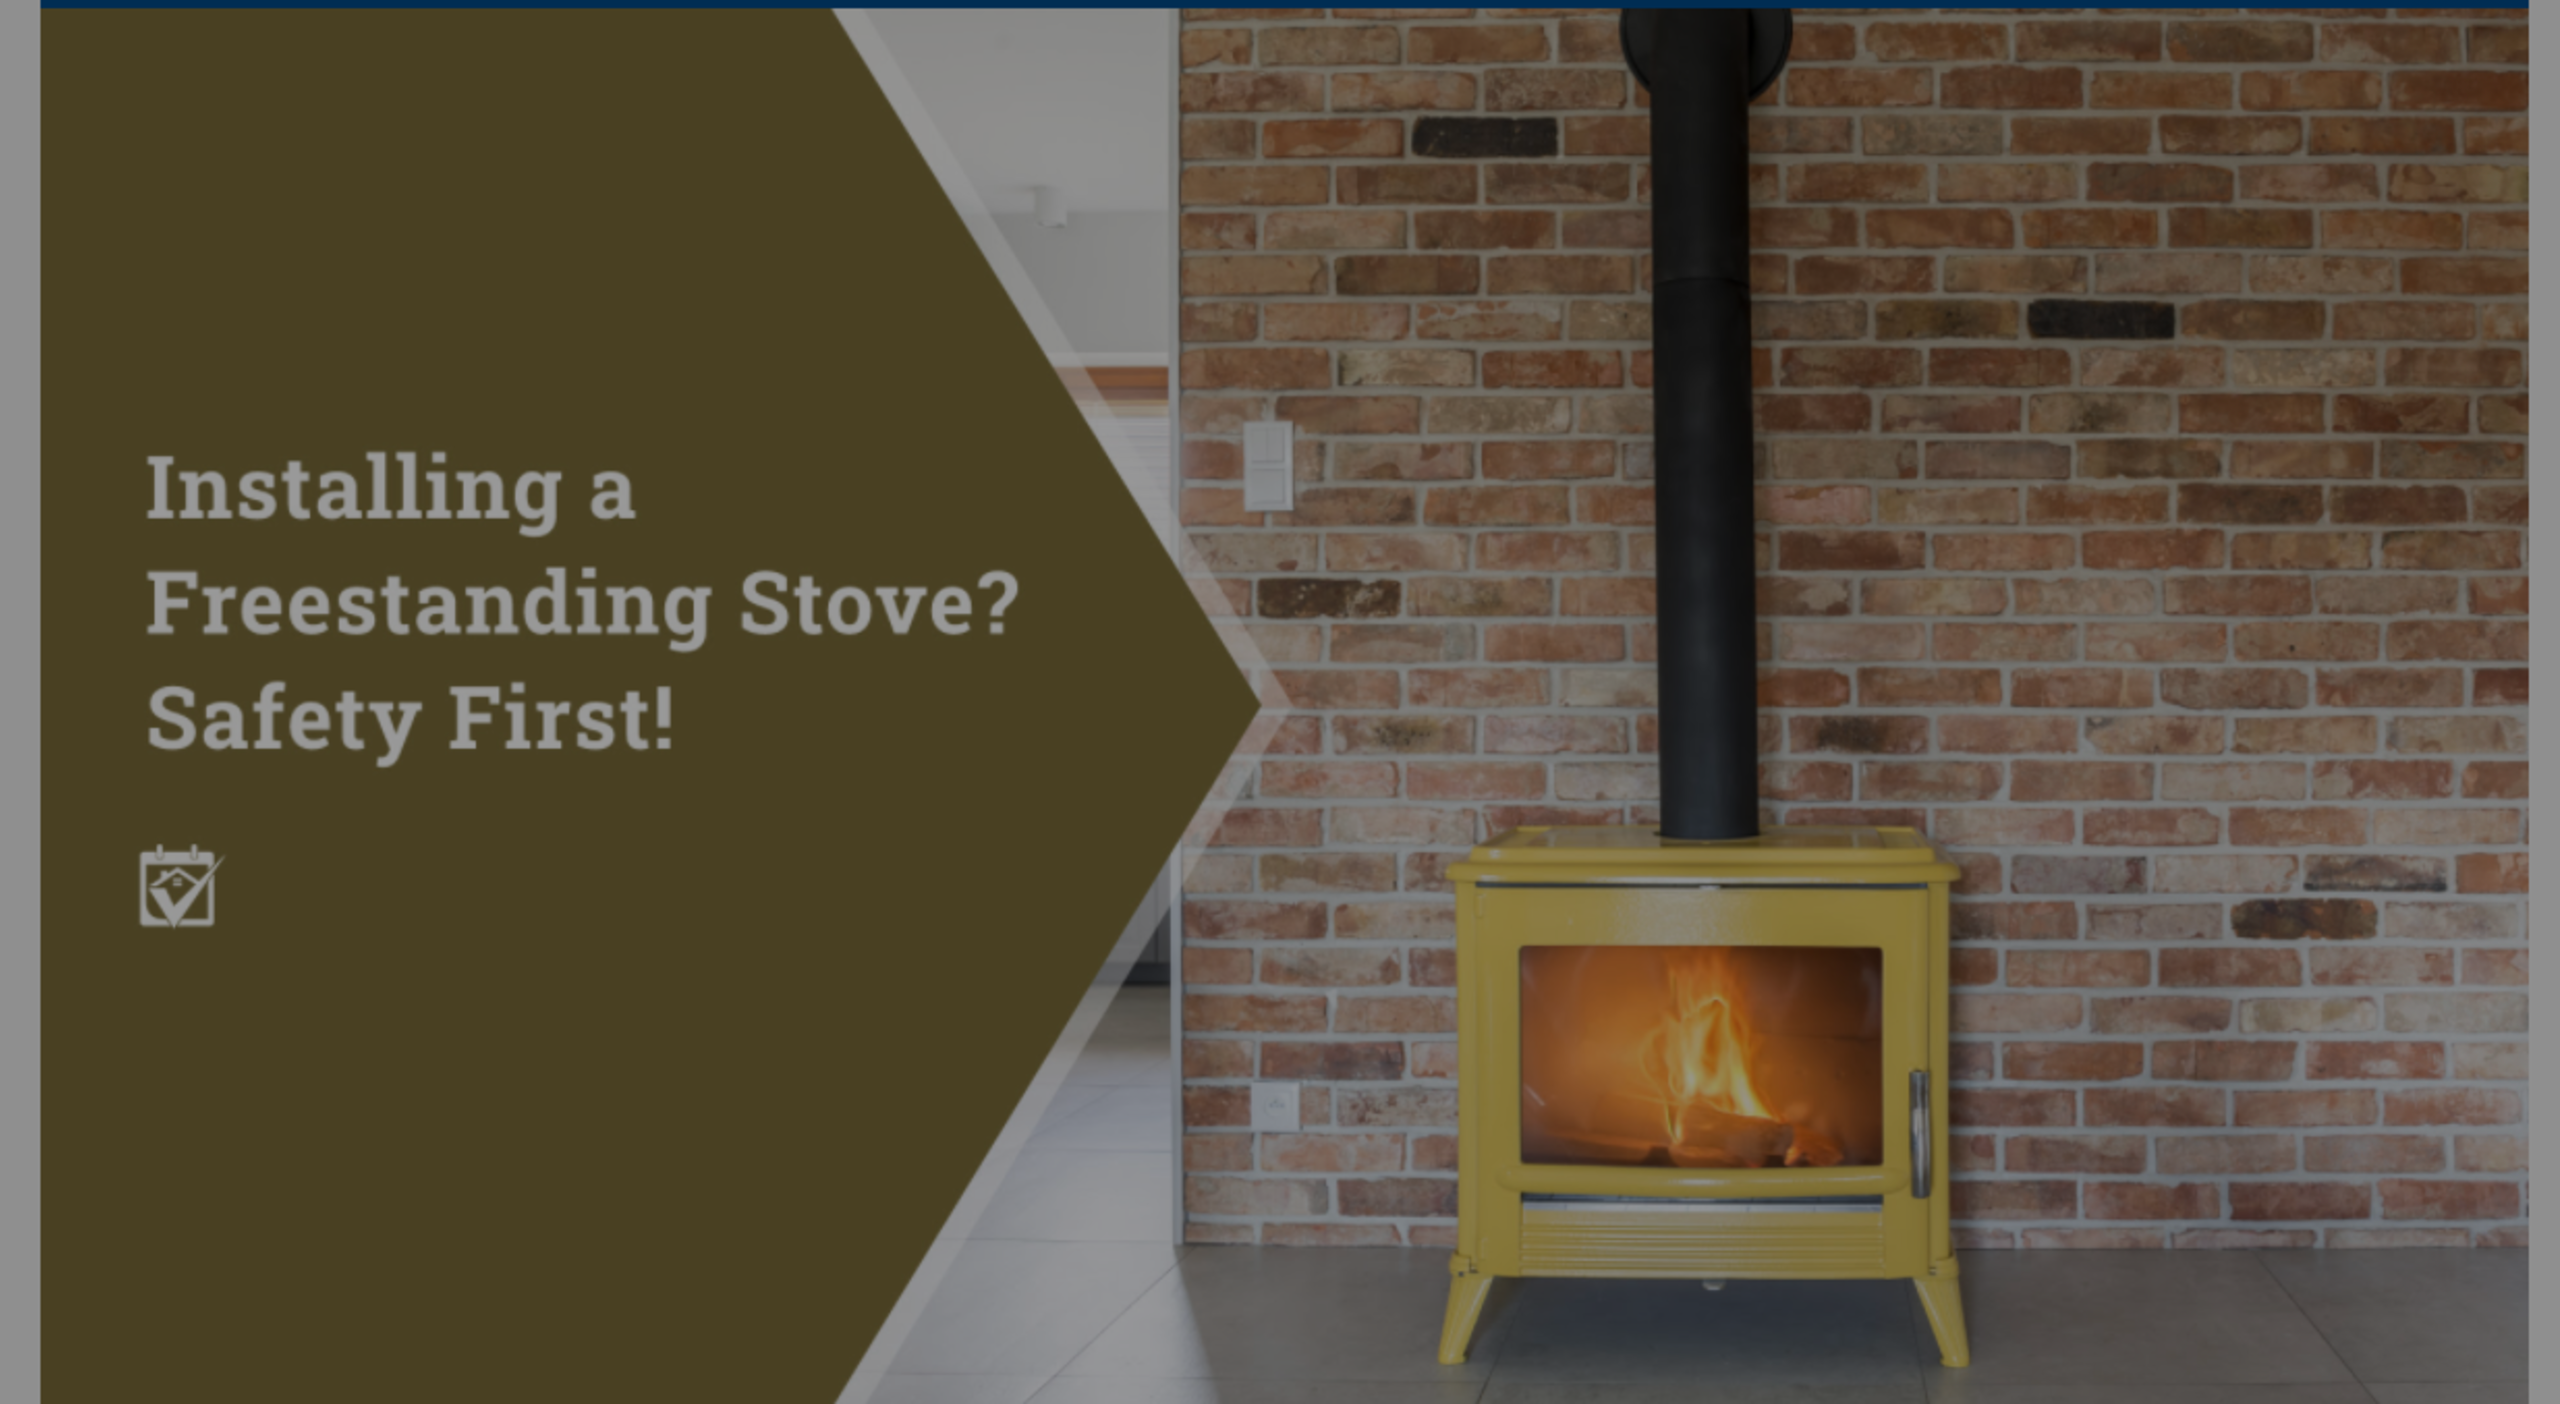 Installing a Freestanding Stove? Safety First!